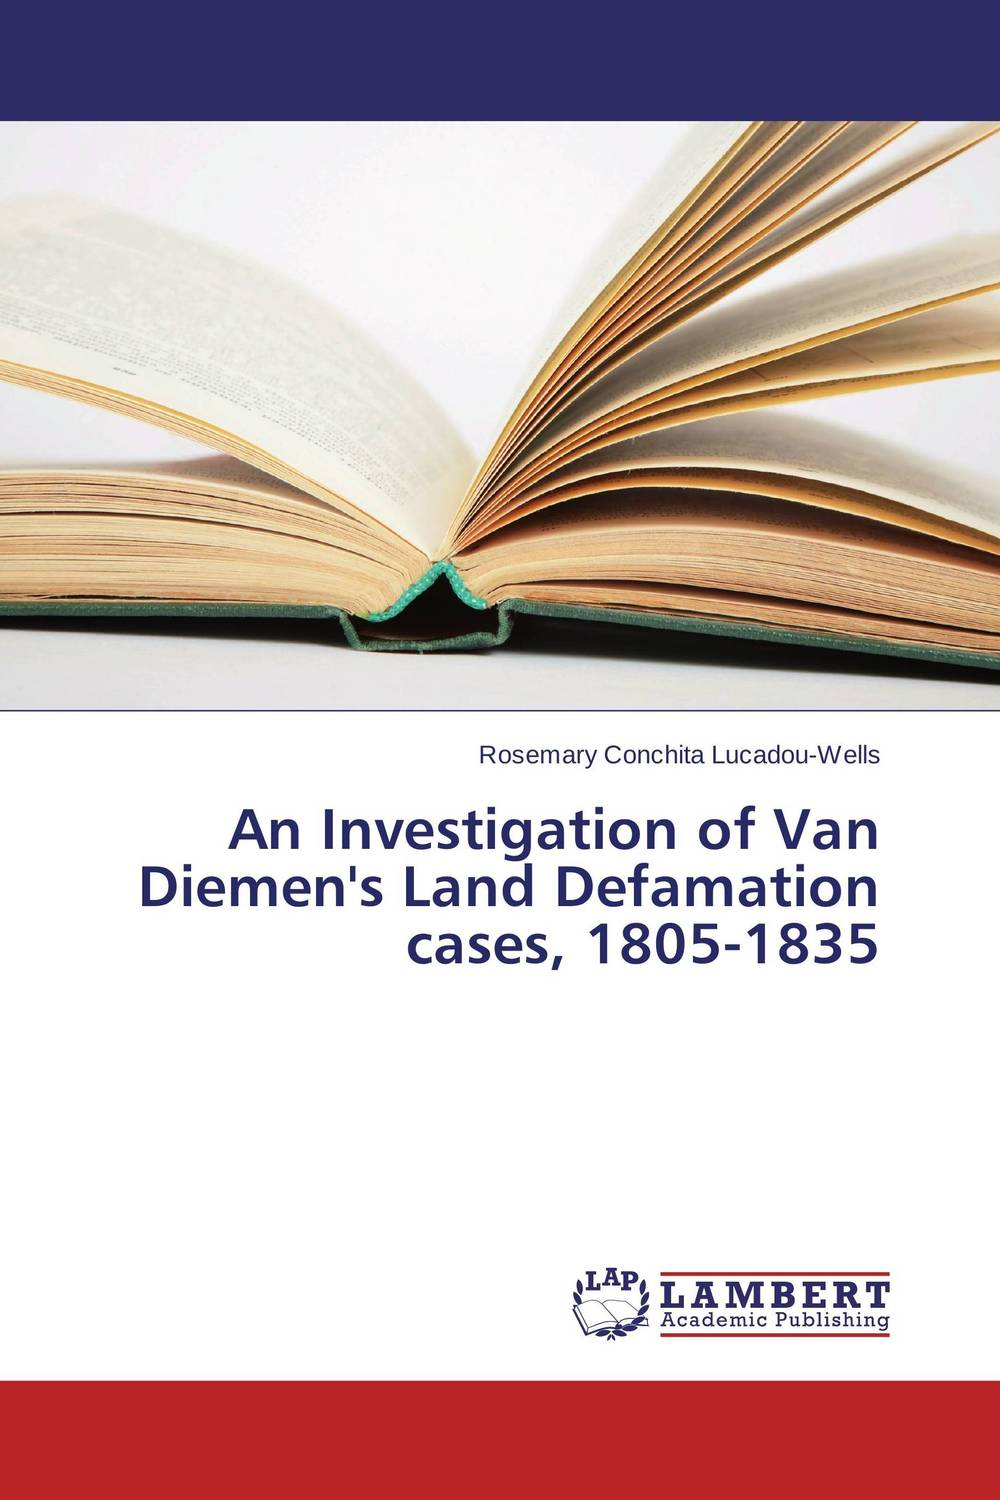 An Investigation of Van Diemen's Land Defamation cases, 1805-1835 ethnopharmacological investigation of the spice grewia paniculata